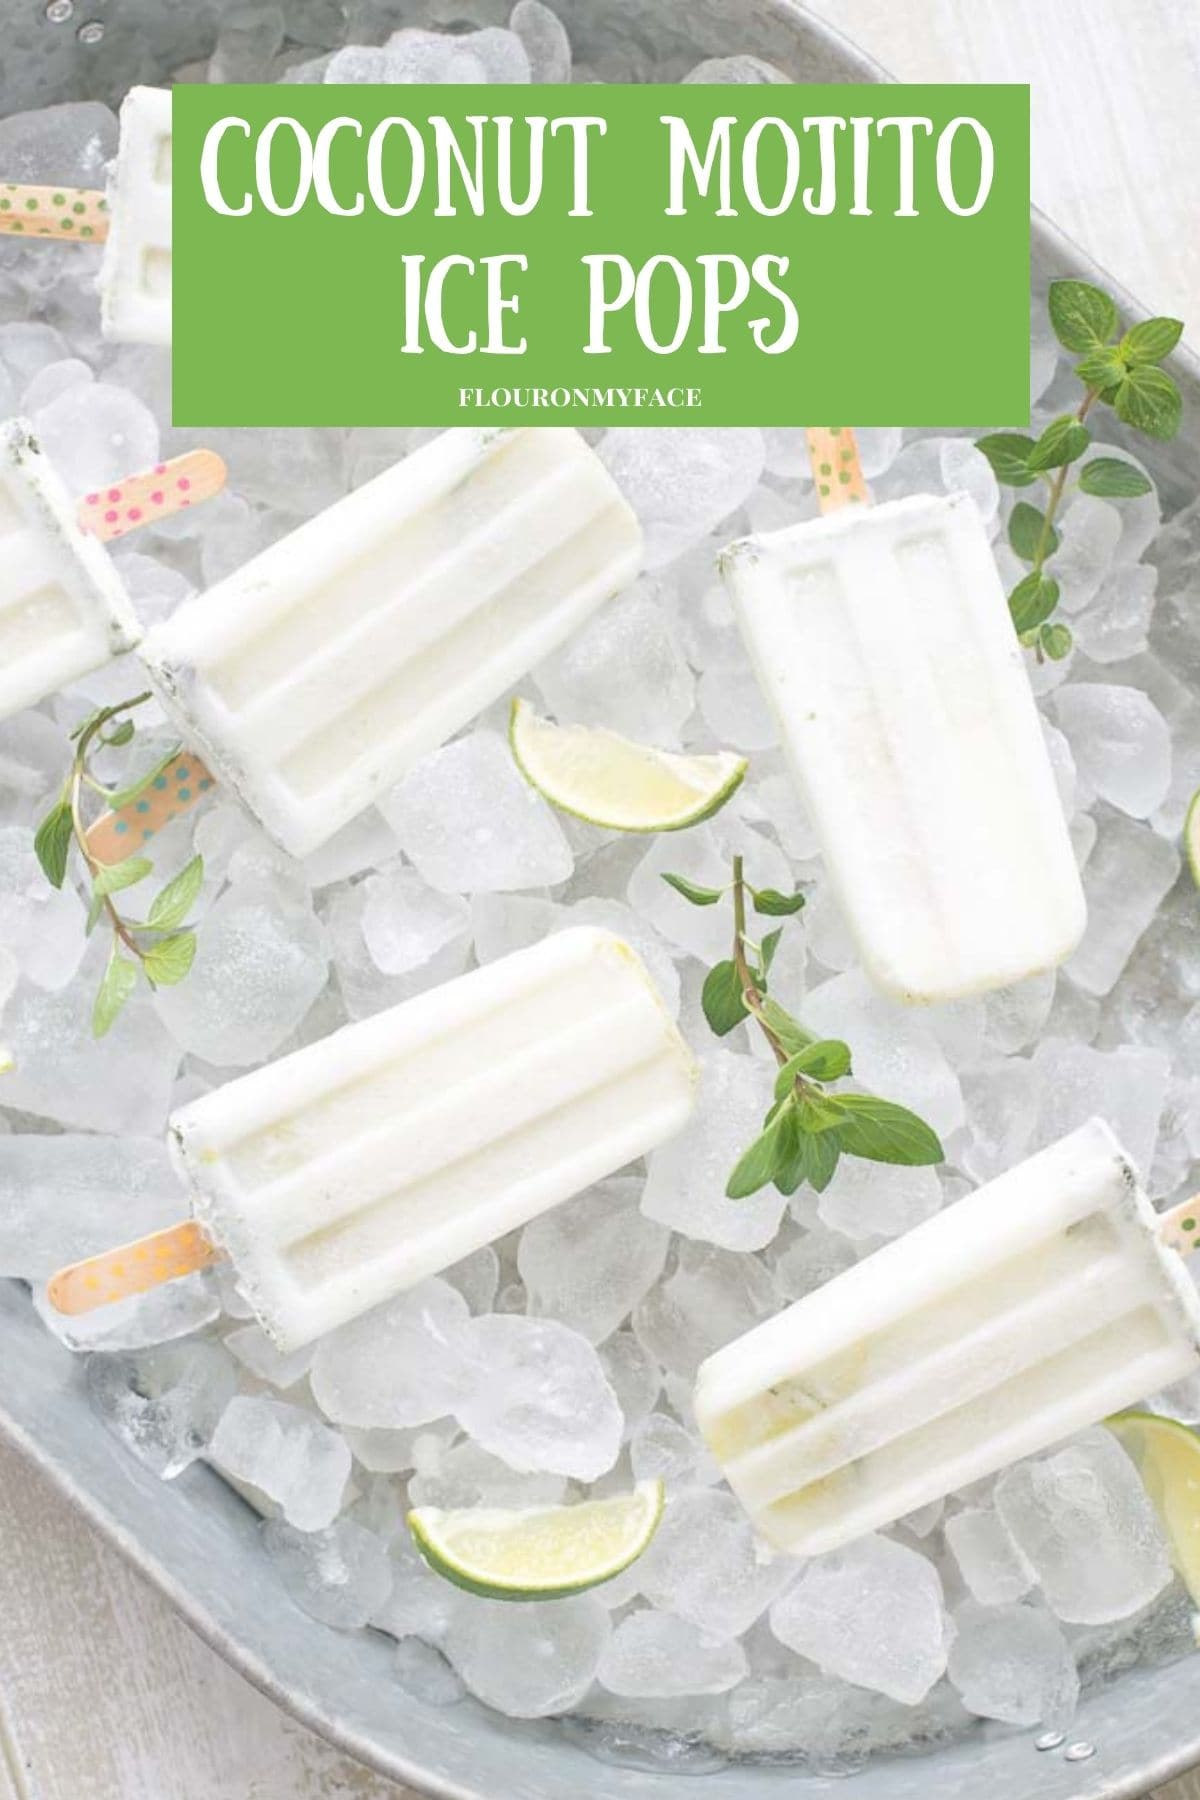 A galvanized serving tray piled high with ice cubes with coconut mojito ice pops nestled in the ice.